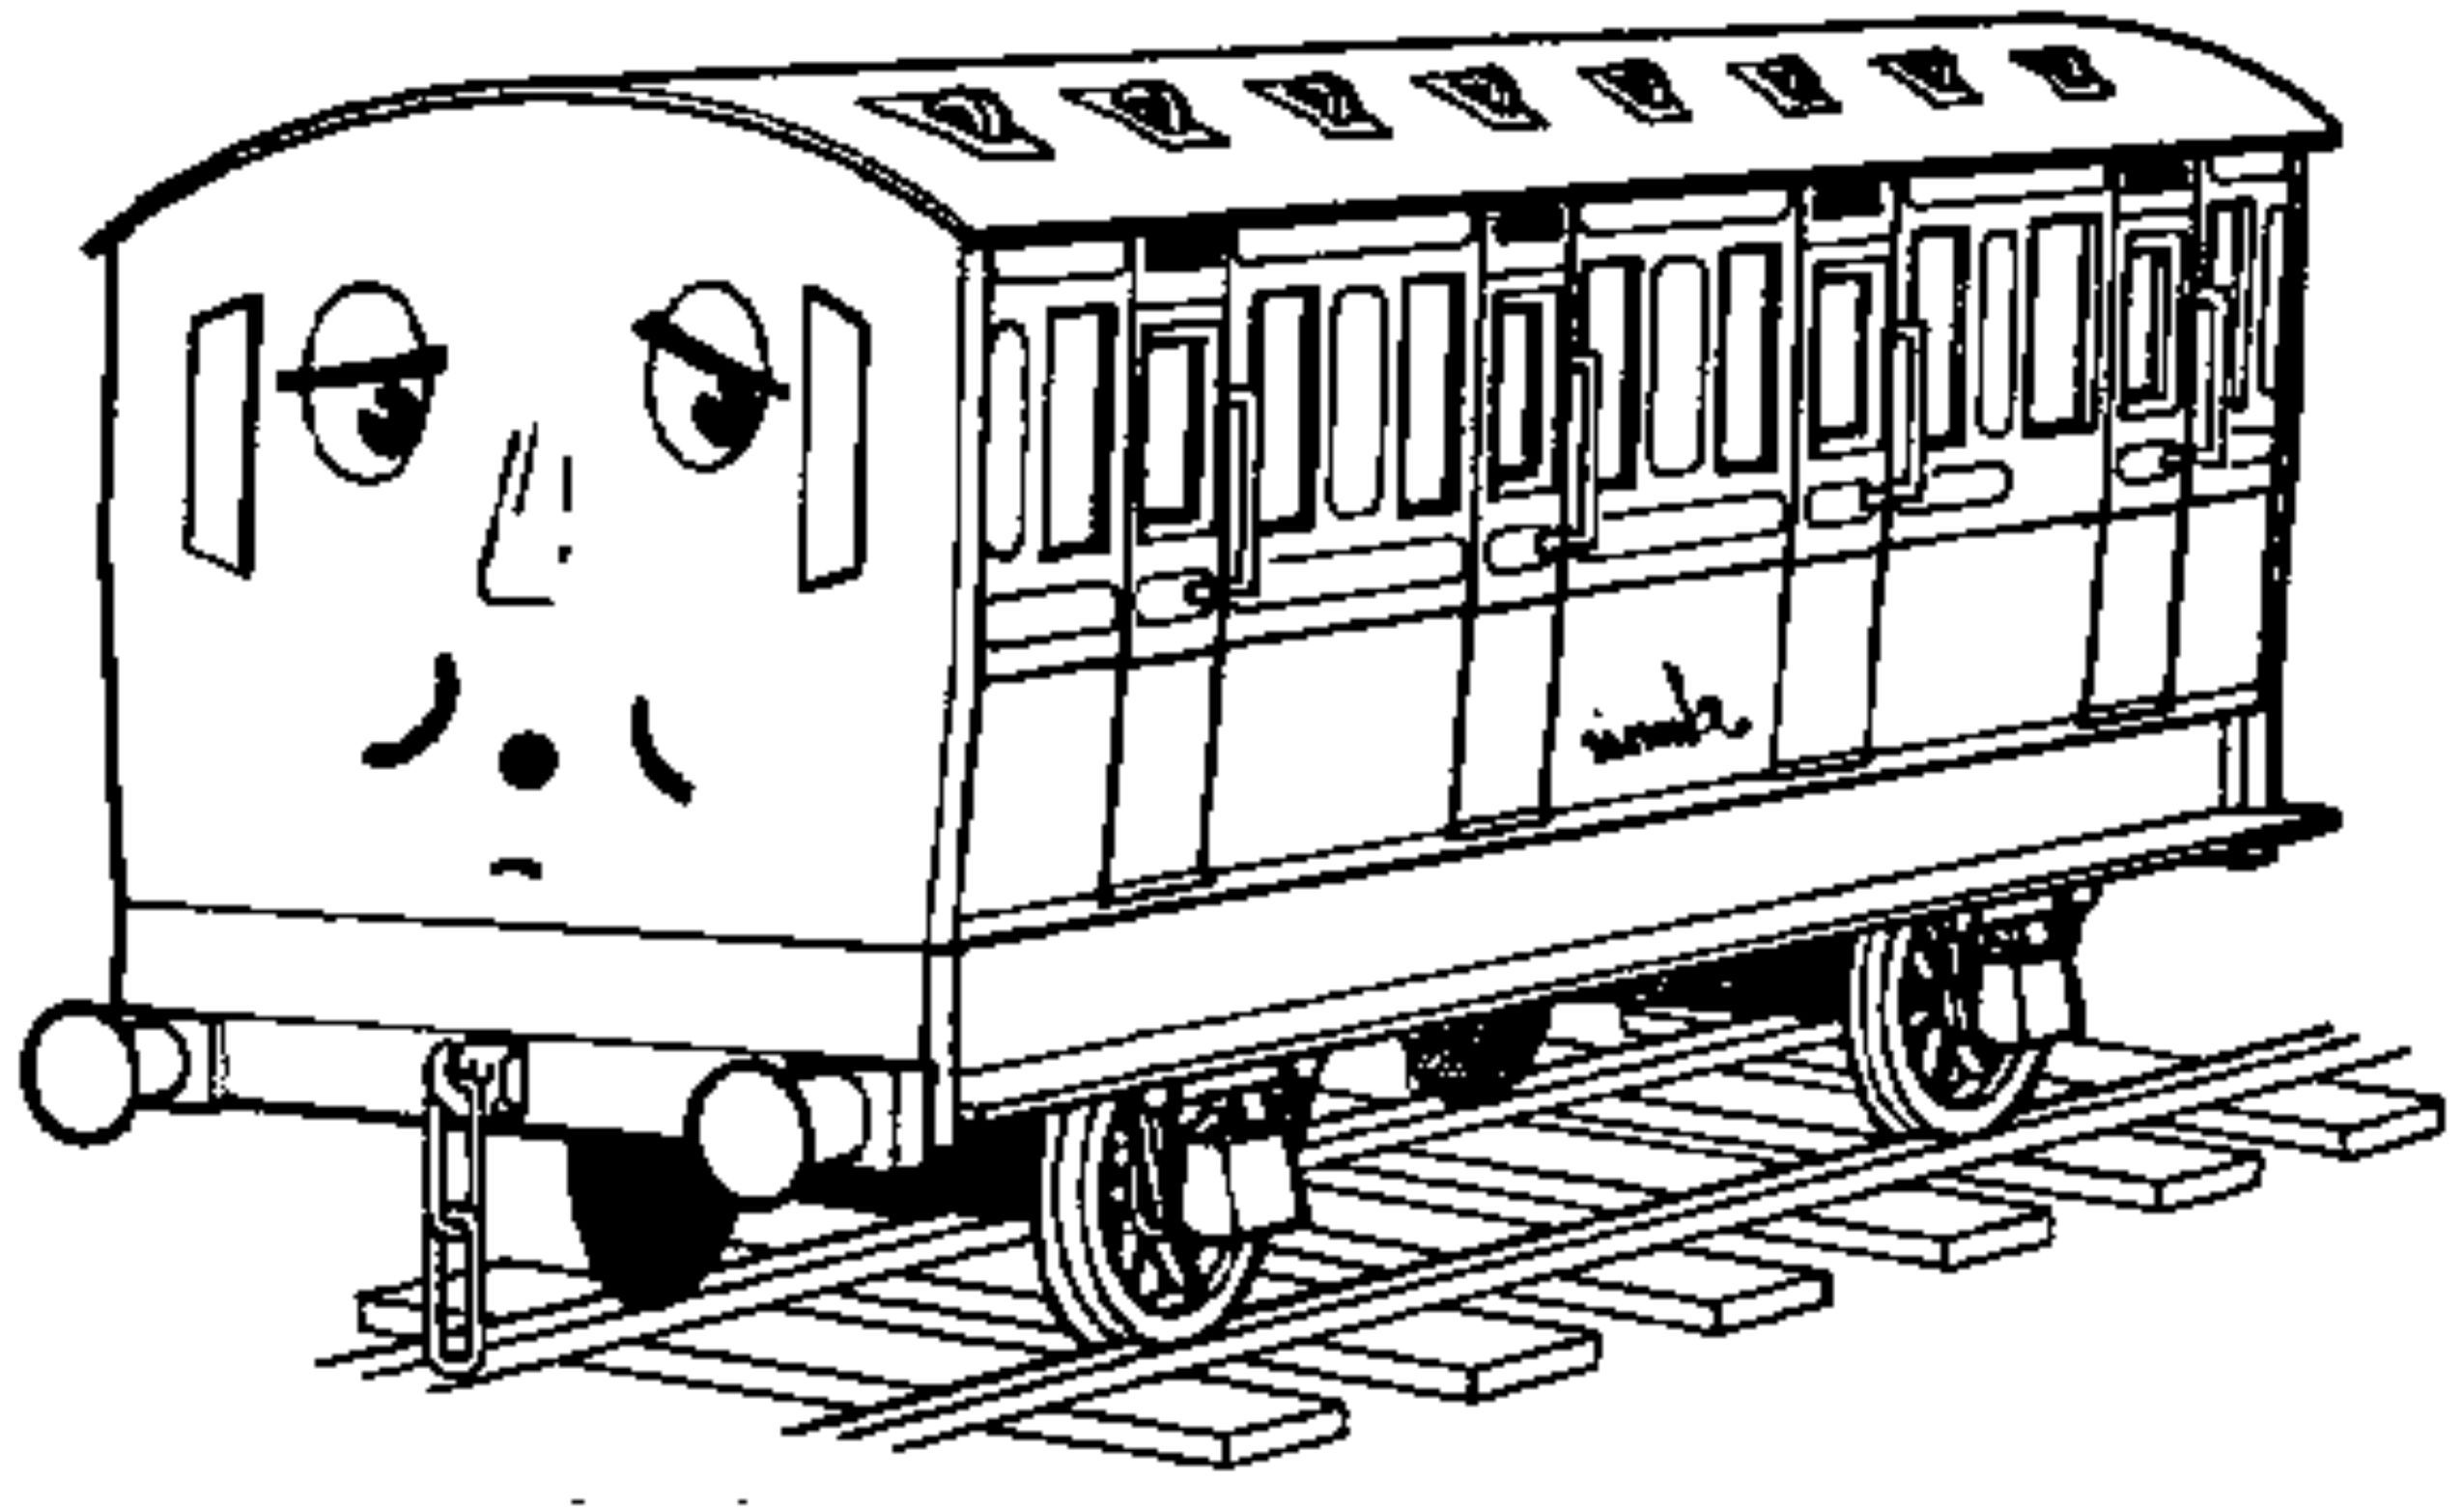 thomas the train color pages thomas the train easter coloring pages coloring home pages thomas the train color